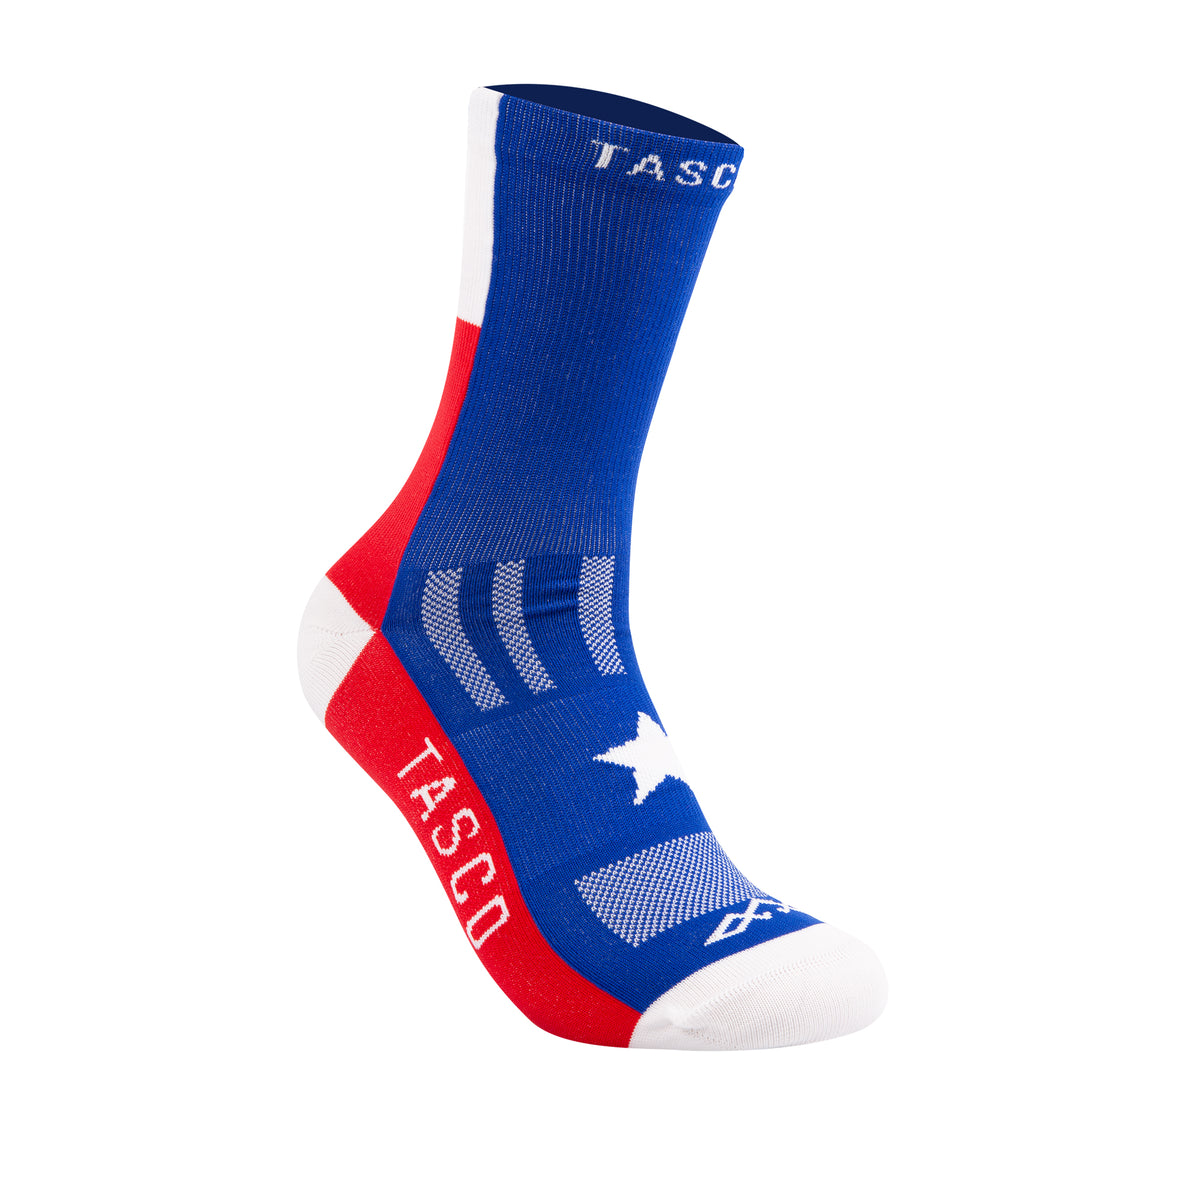 Lone Star Double Digits MTB Socks - MTB Lifestyle | TASCO MTB